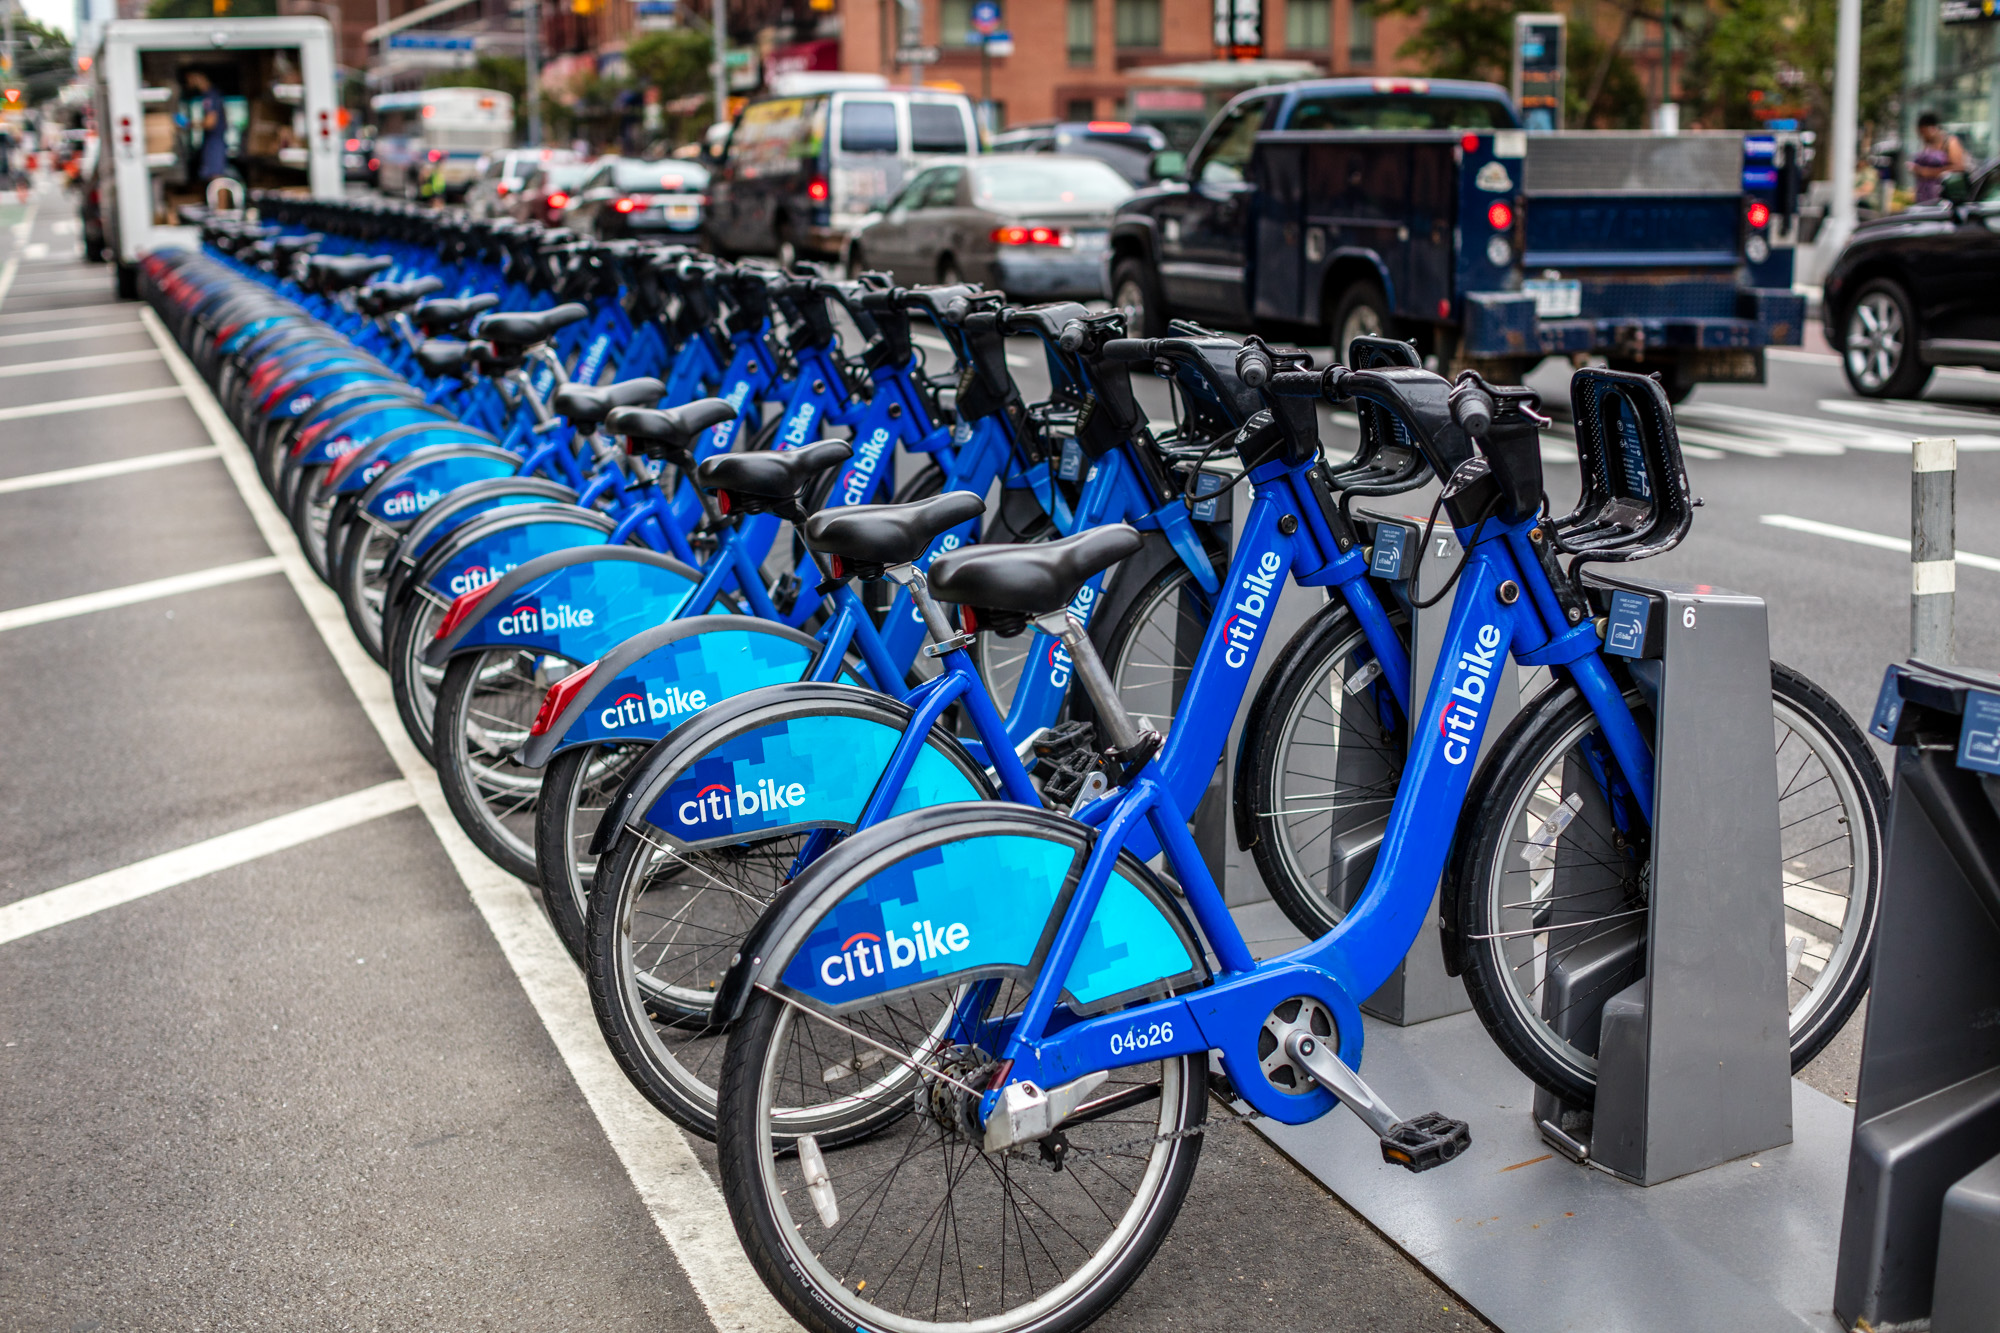 A row of bright-blue Citi Bikes docked at a bike dock.